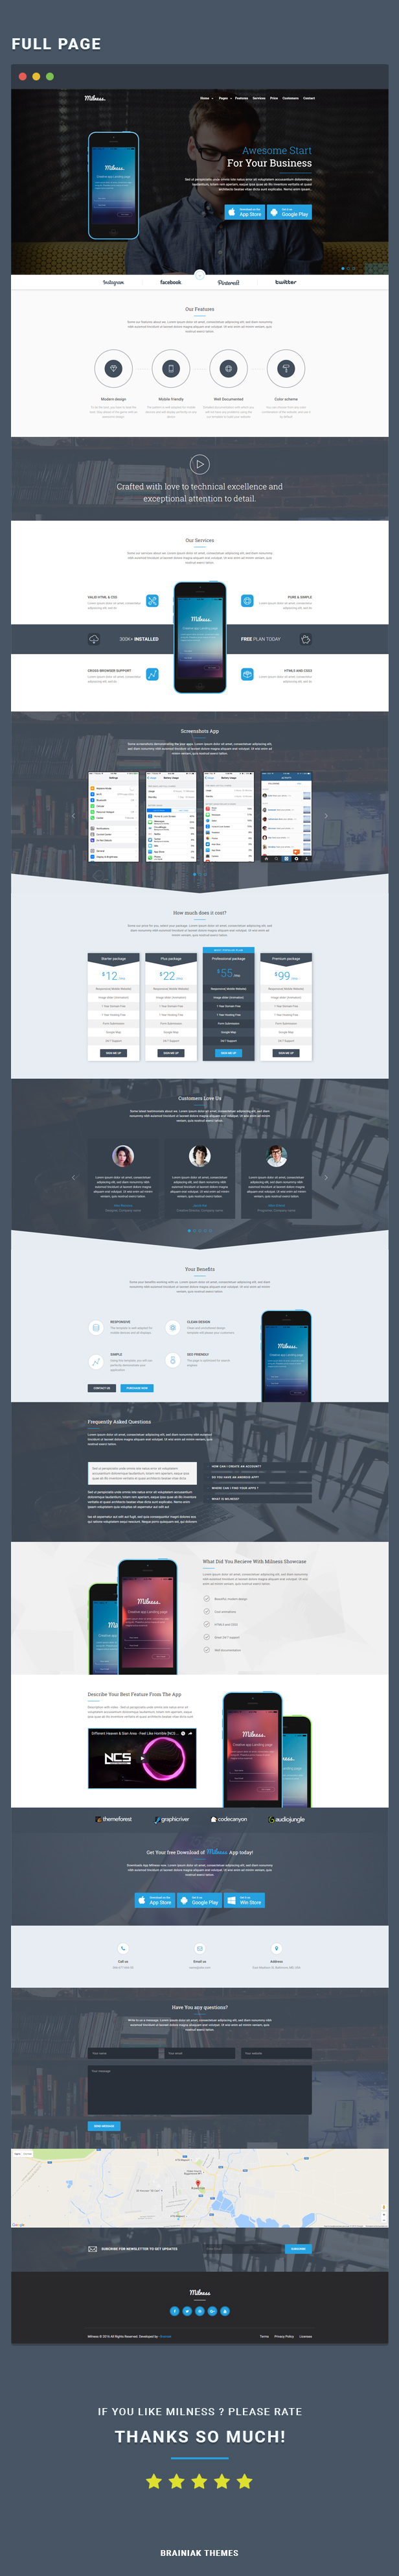 Milness - Showcase Mobile App WordPress Theme